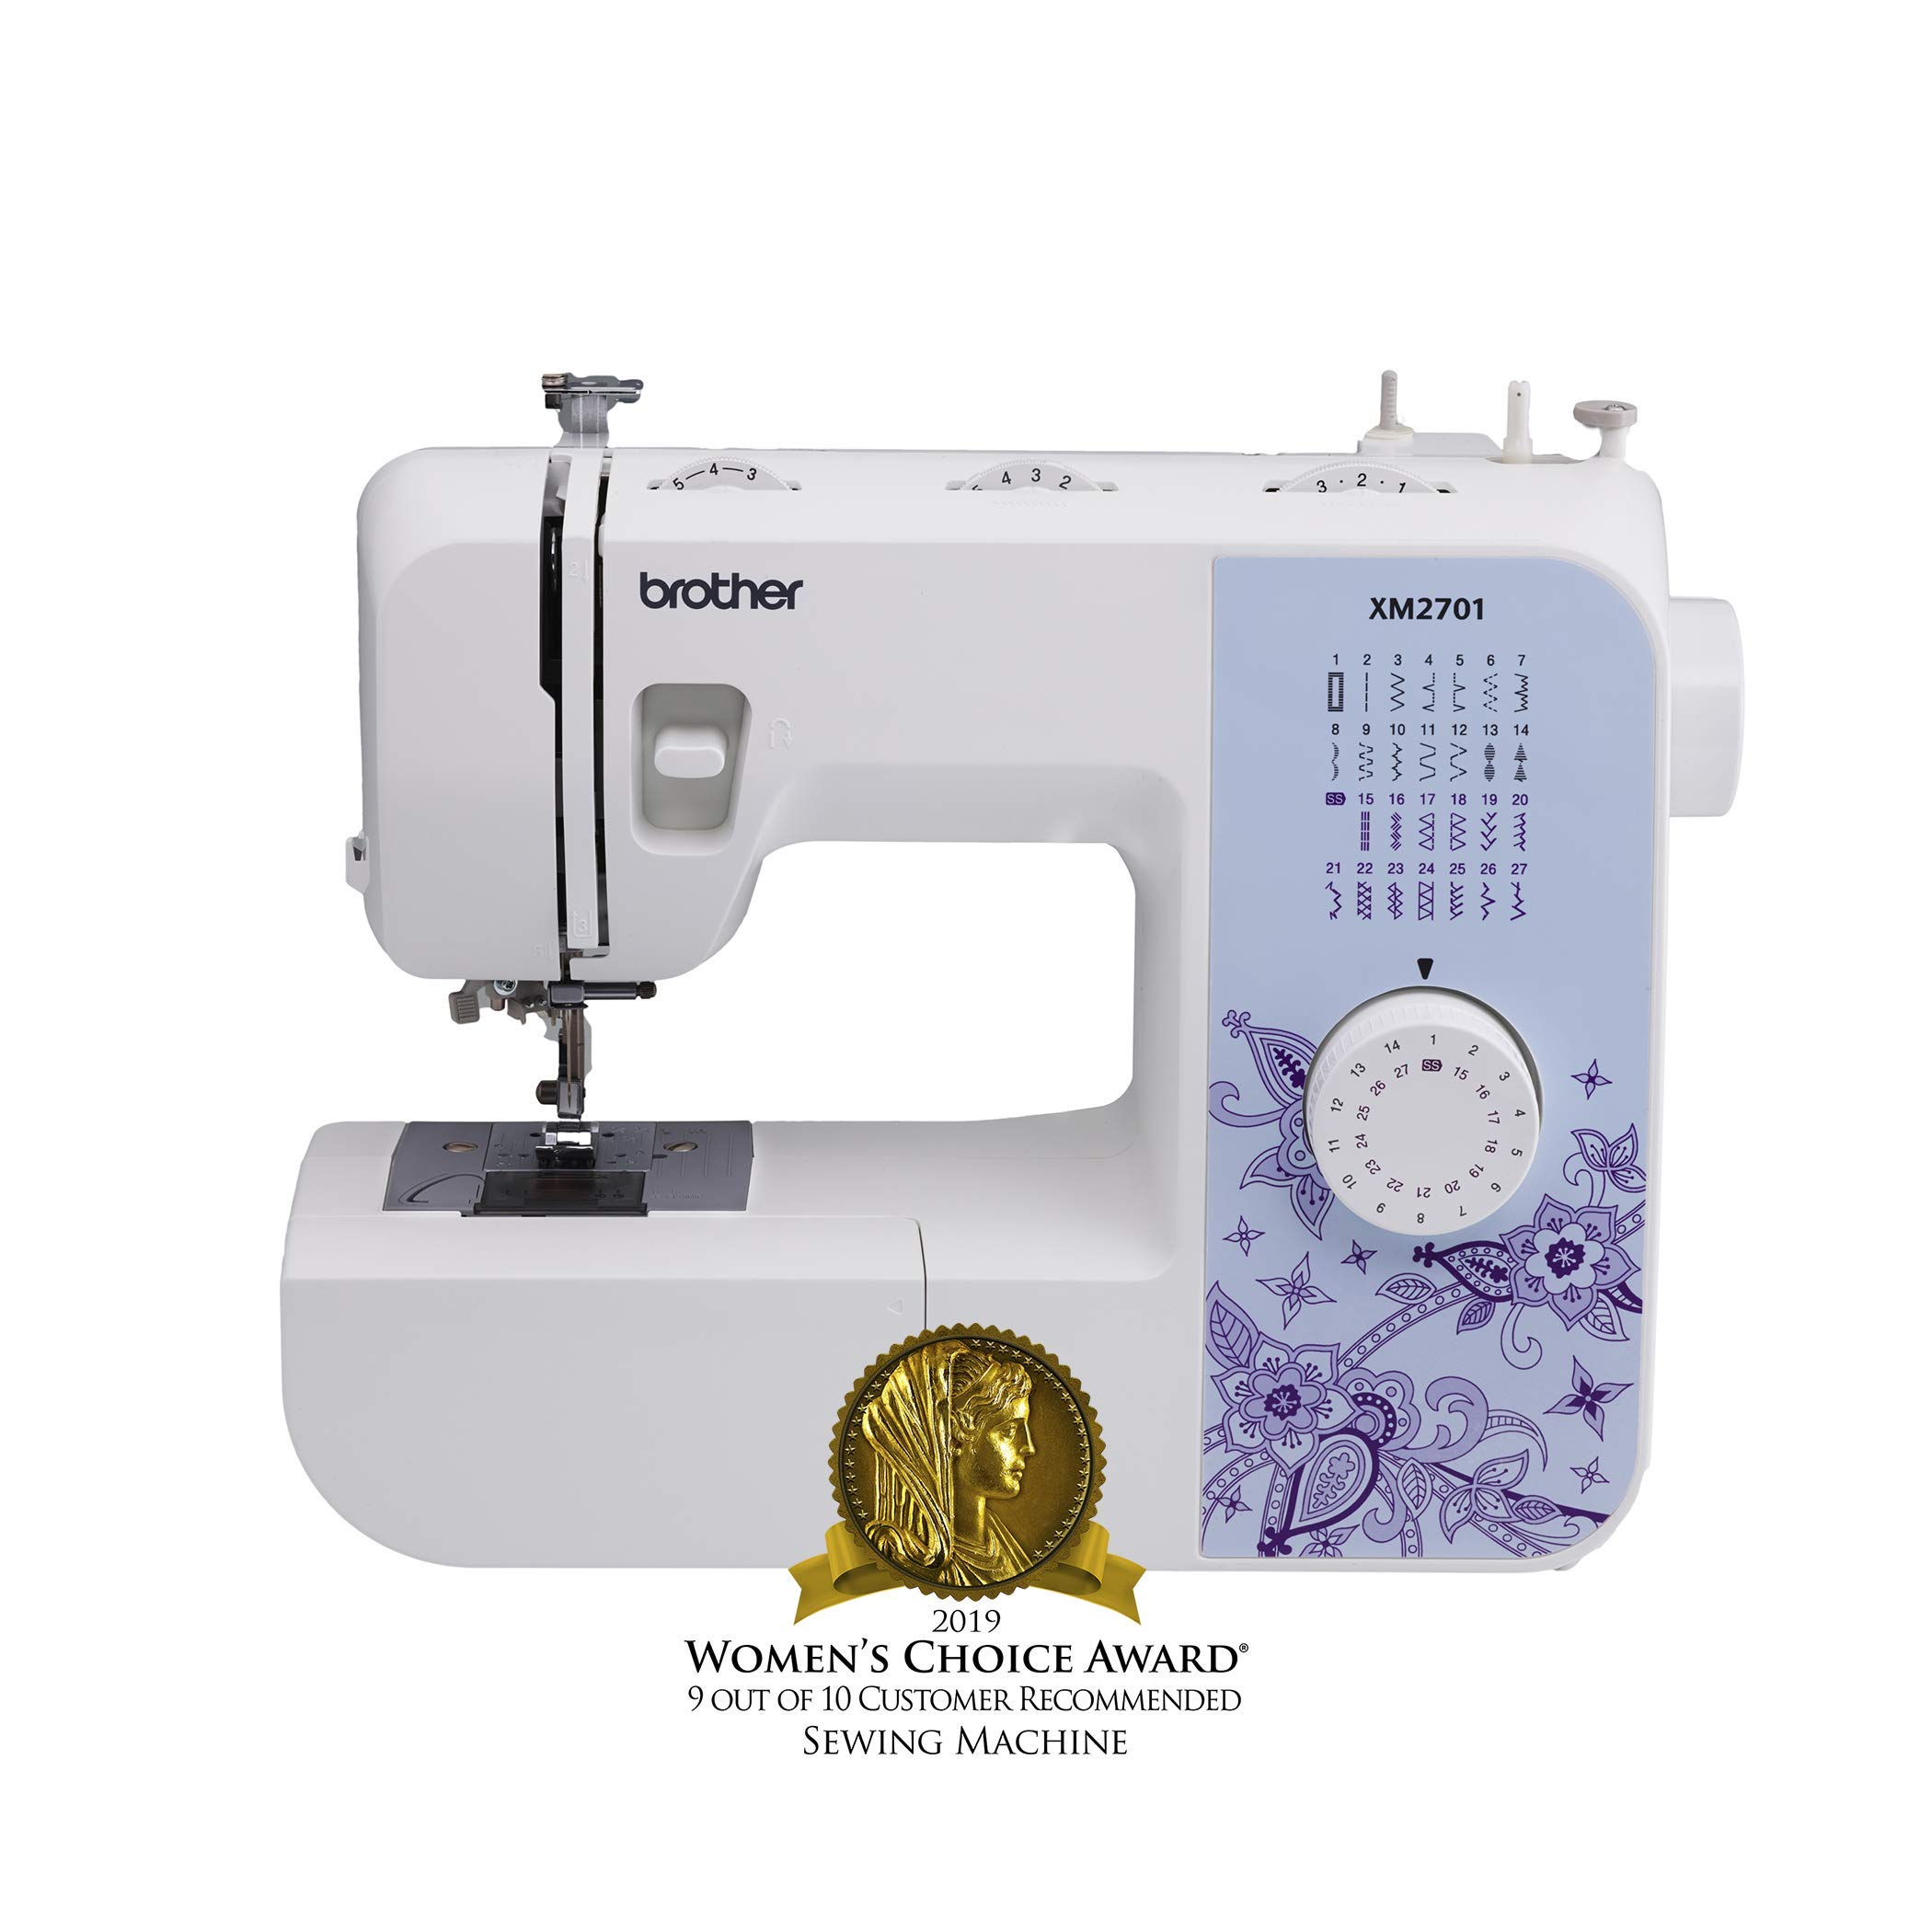 Brother Sewing Machine, XM2701, Lightweight Sewing Machine with 27 Stitches by Brother